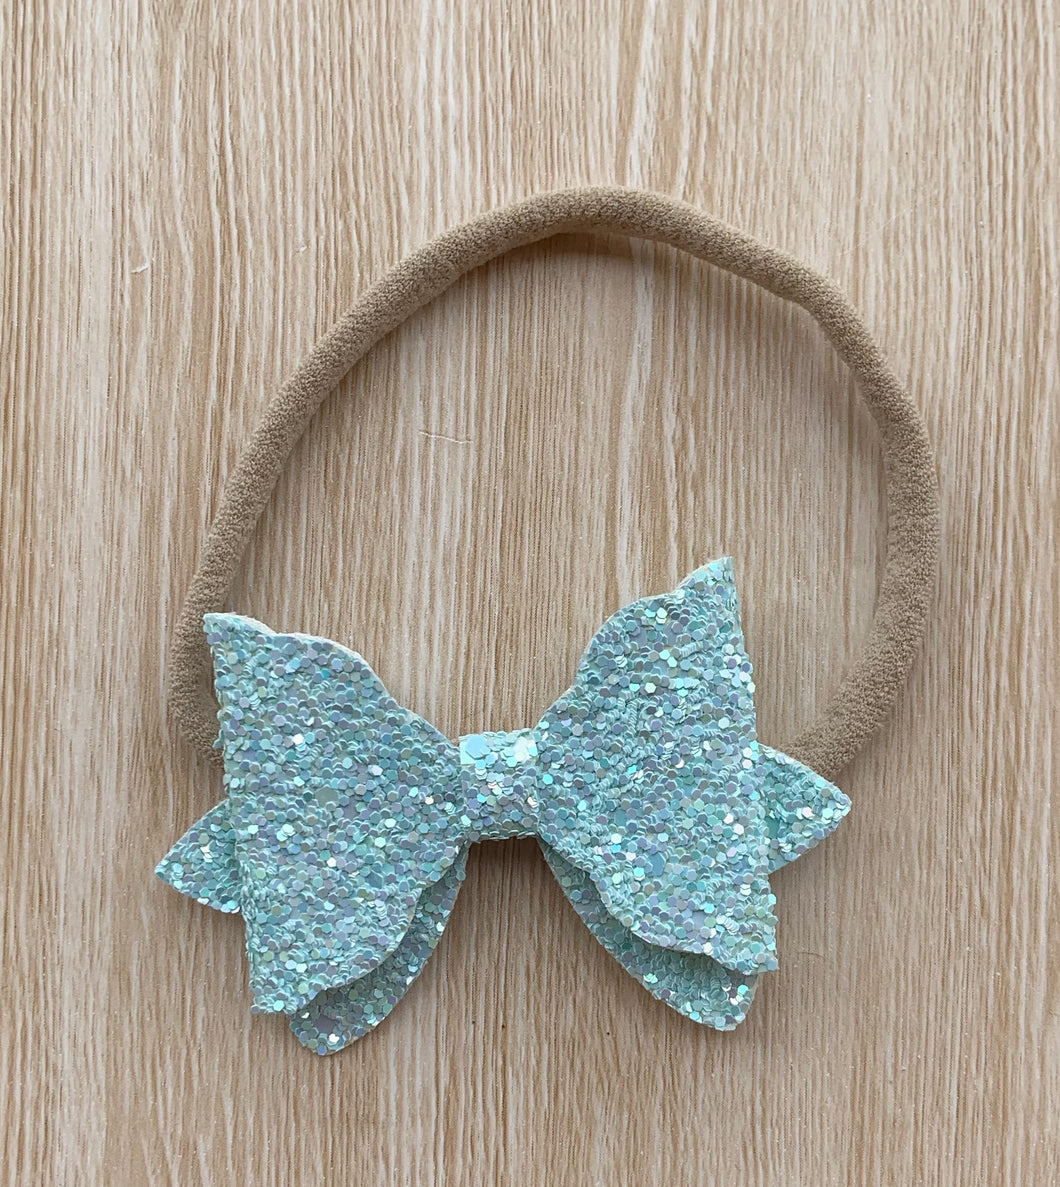 Bow35 glitter bow, leatherette bow, fringe clip, butterfly bow, personalised bow, rainbow bow, dolly hair bow, floral bow, shimmer bow, pretty bow , Bow Handmade Hairbow, handmade hair accessories, Sweet Adalyn Sweet Adalyn